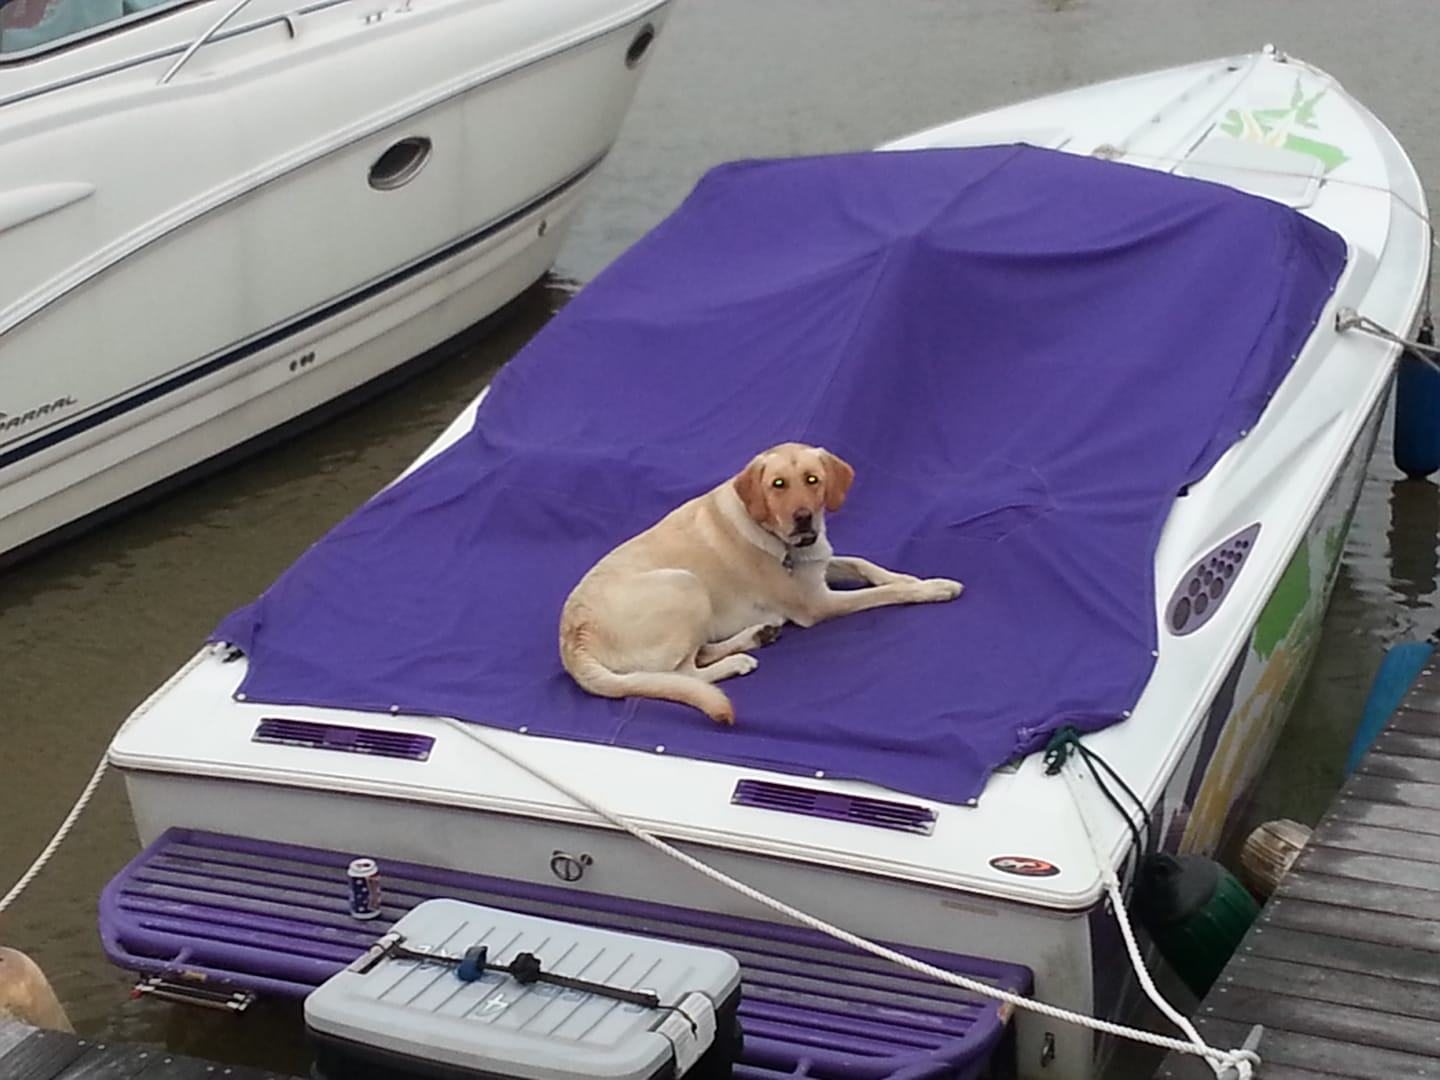 Protecting dads boat